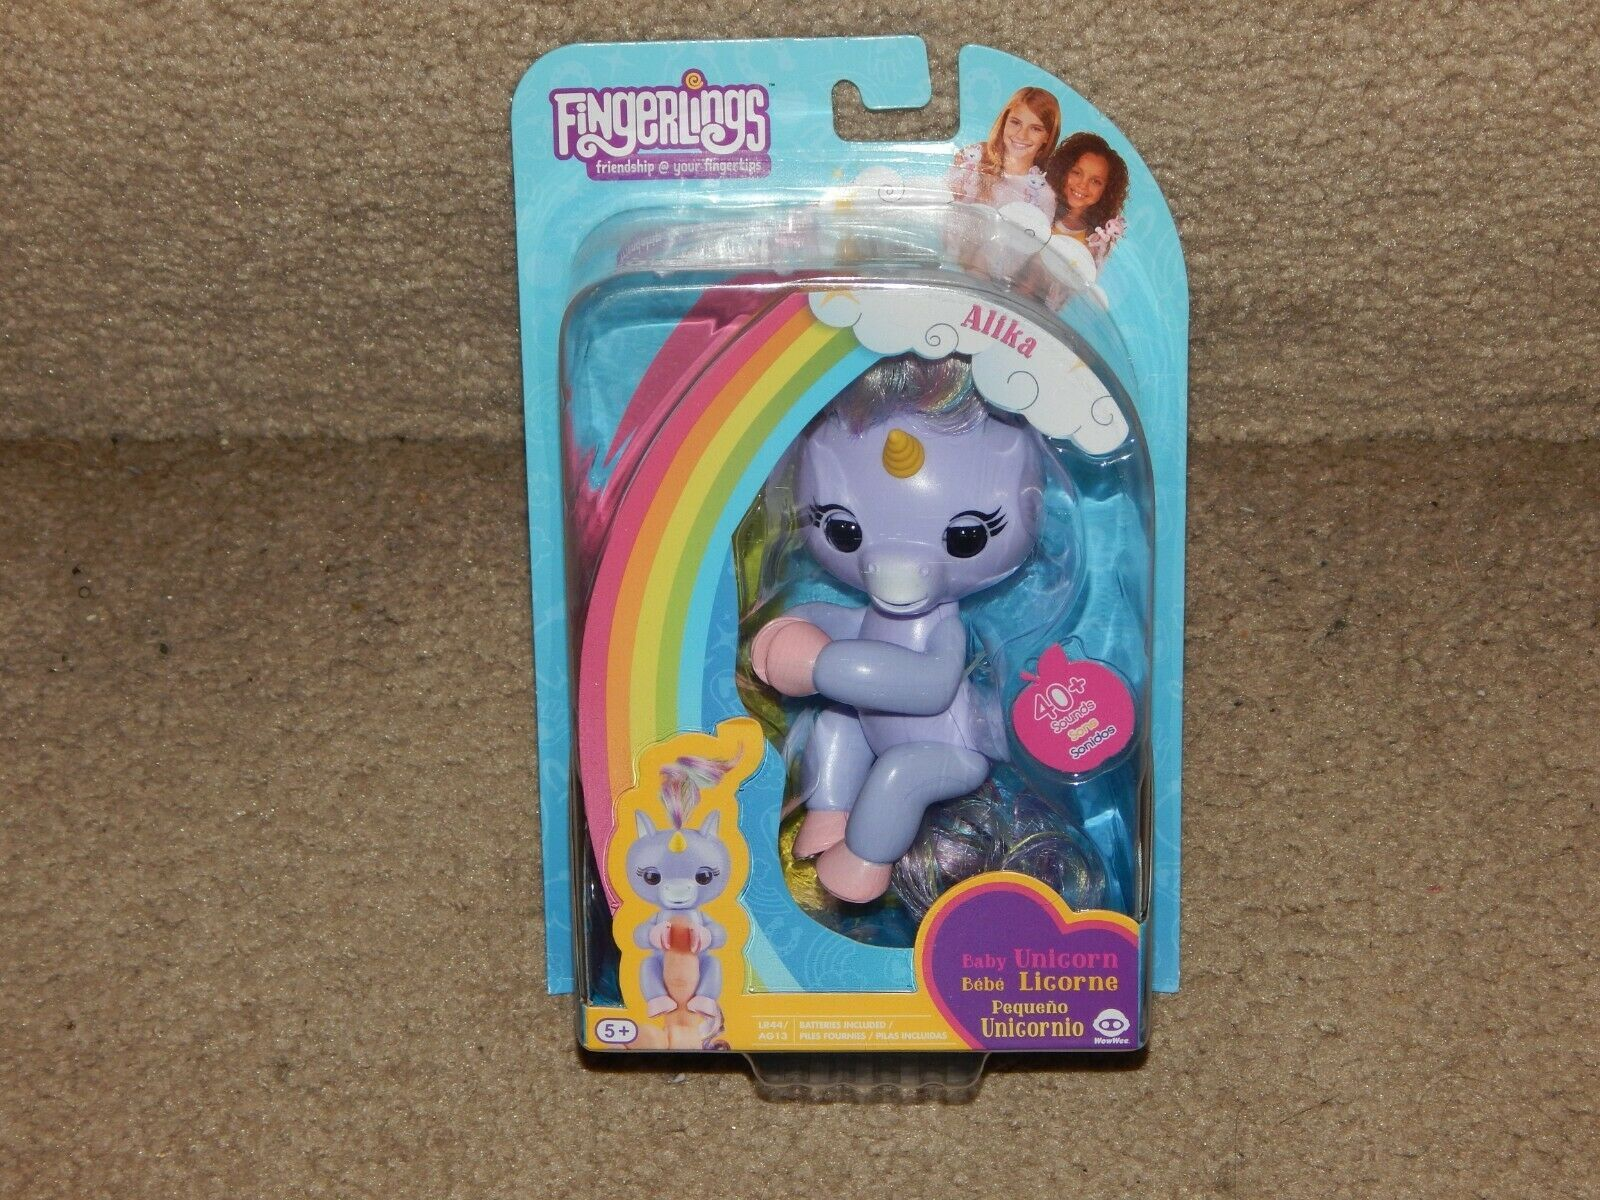 New Fingerlings Alika Bably Unicorn Figure + LR44 Batteries Free Shipping 5+